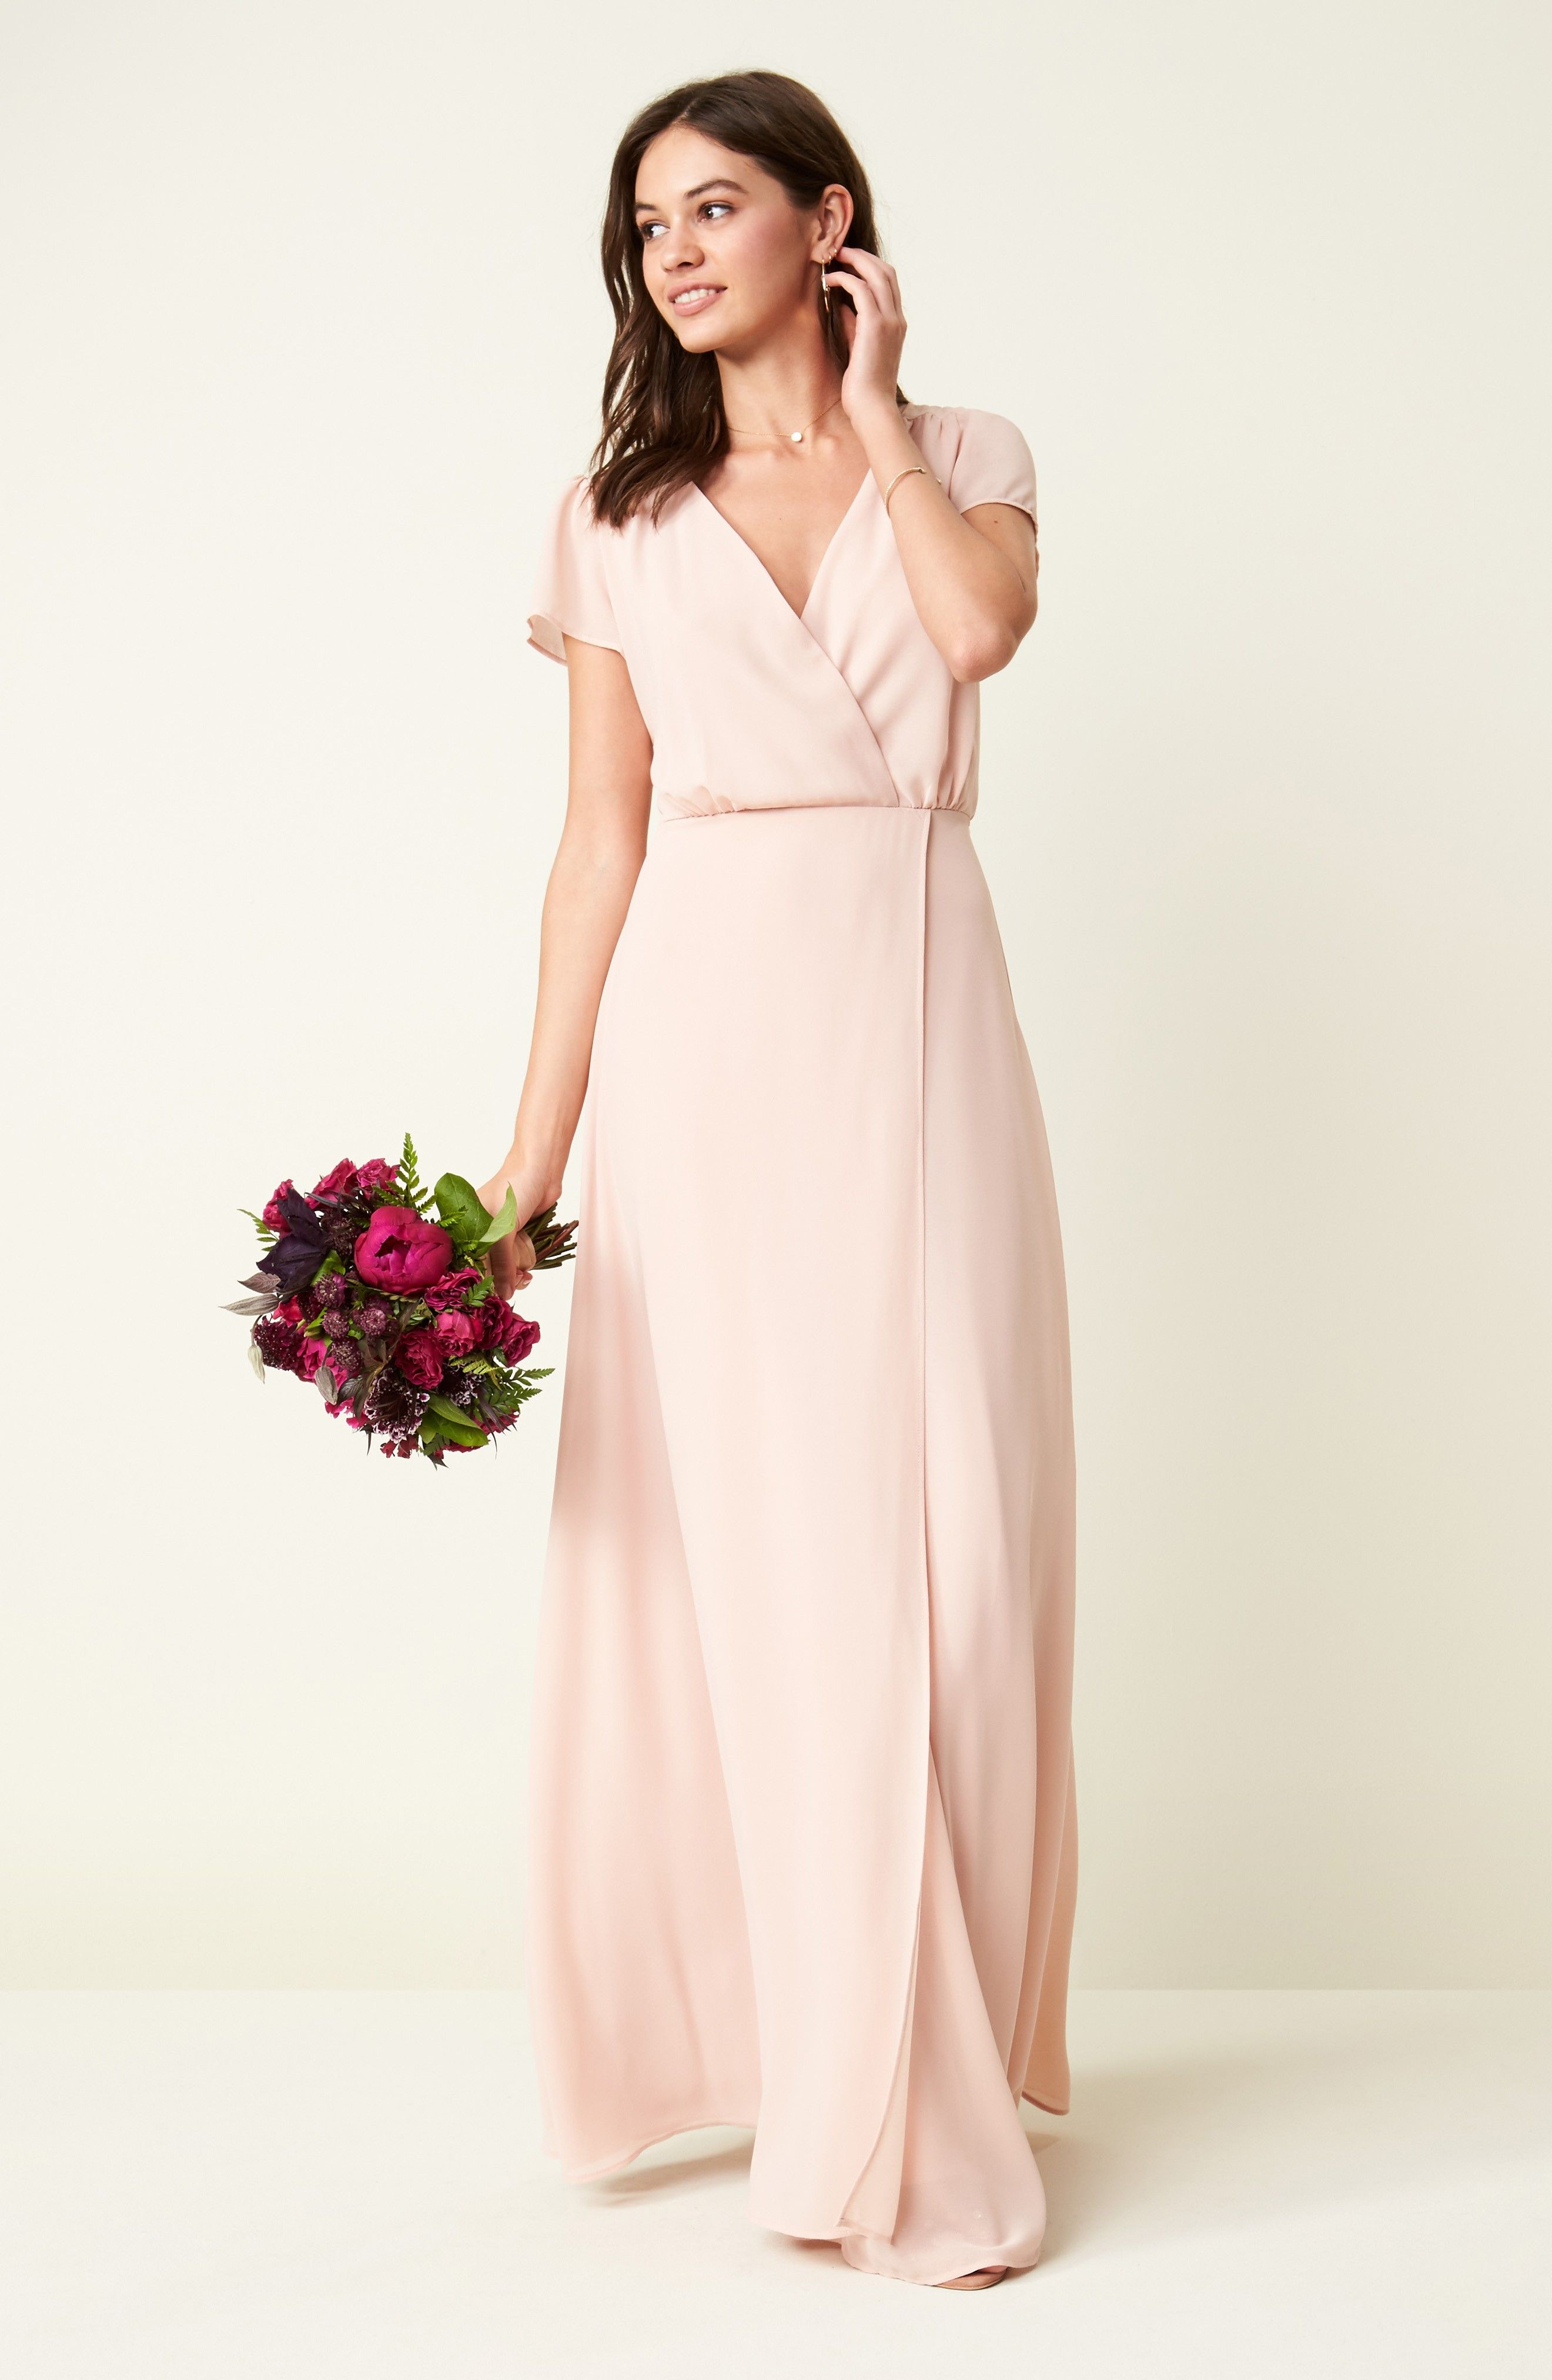 Mismatched neutral bridesmaid dresses wedding a guide on how to get the look of mismatched neutral bridesmaid dresses with neutral ombrellifo Images